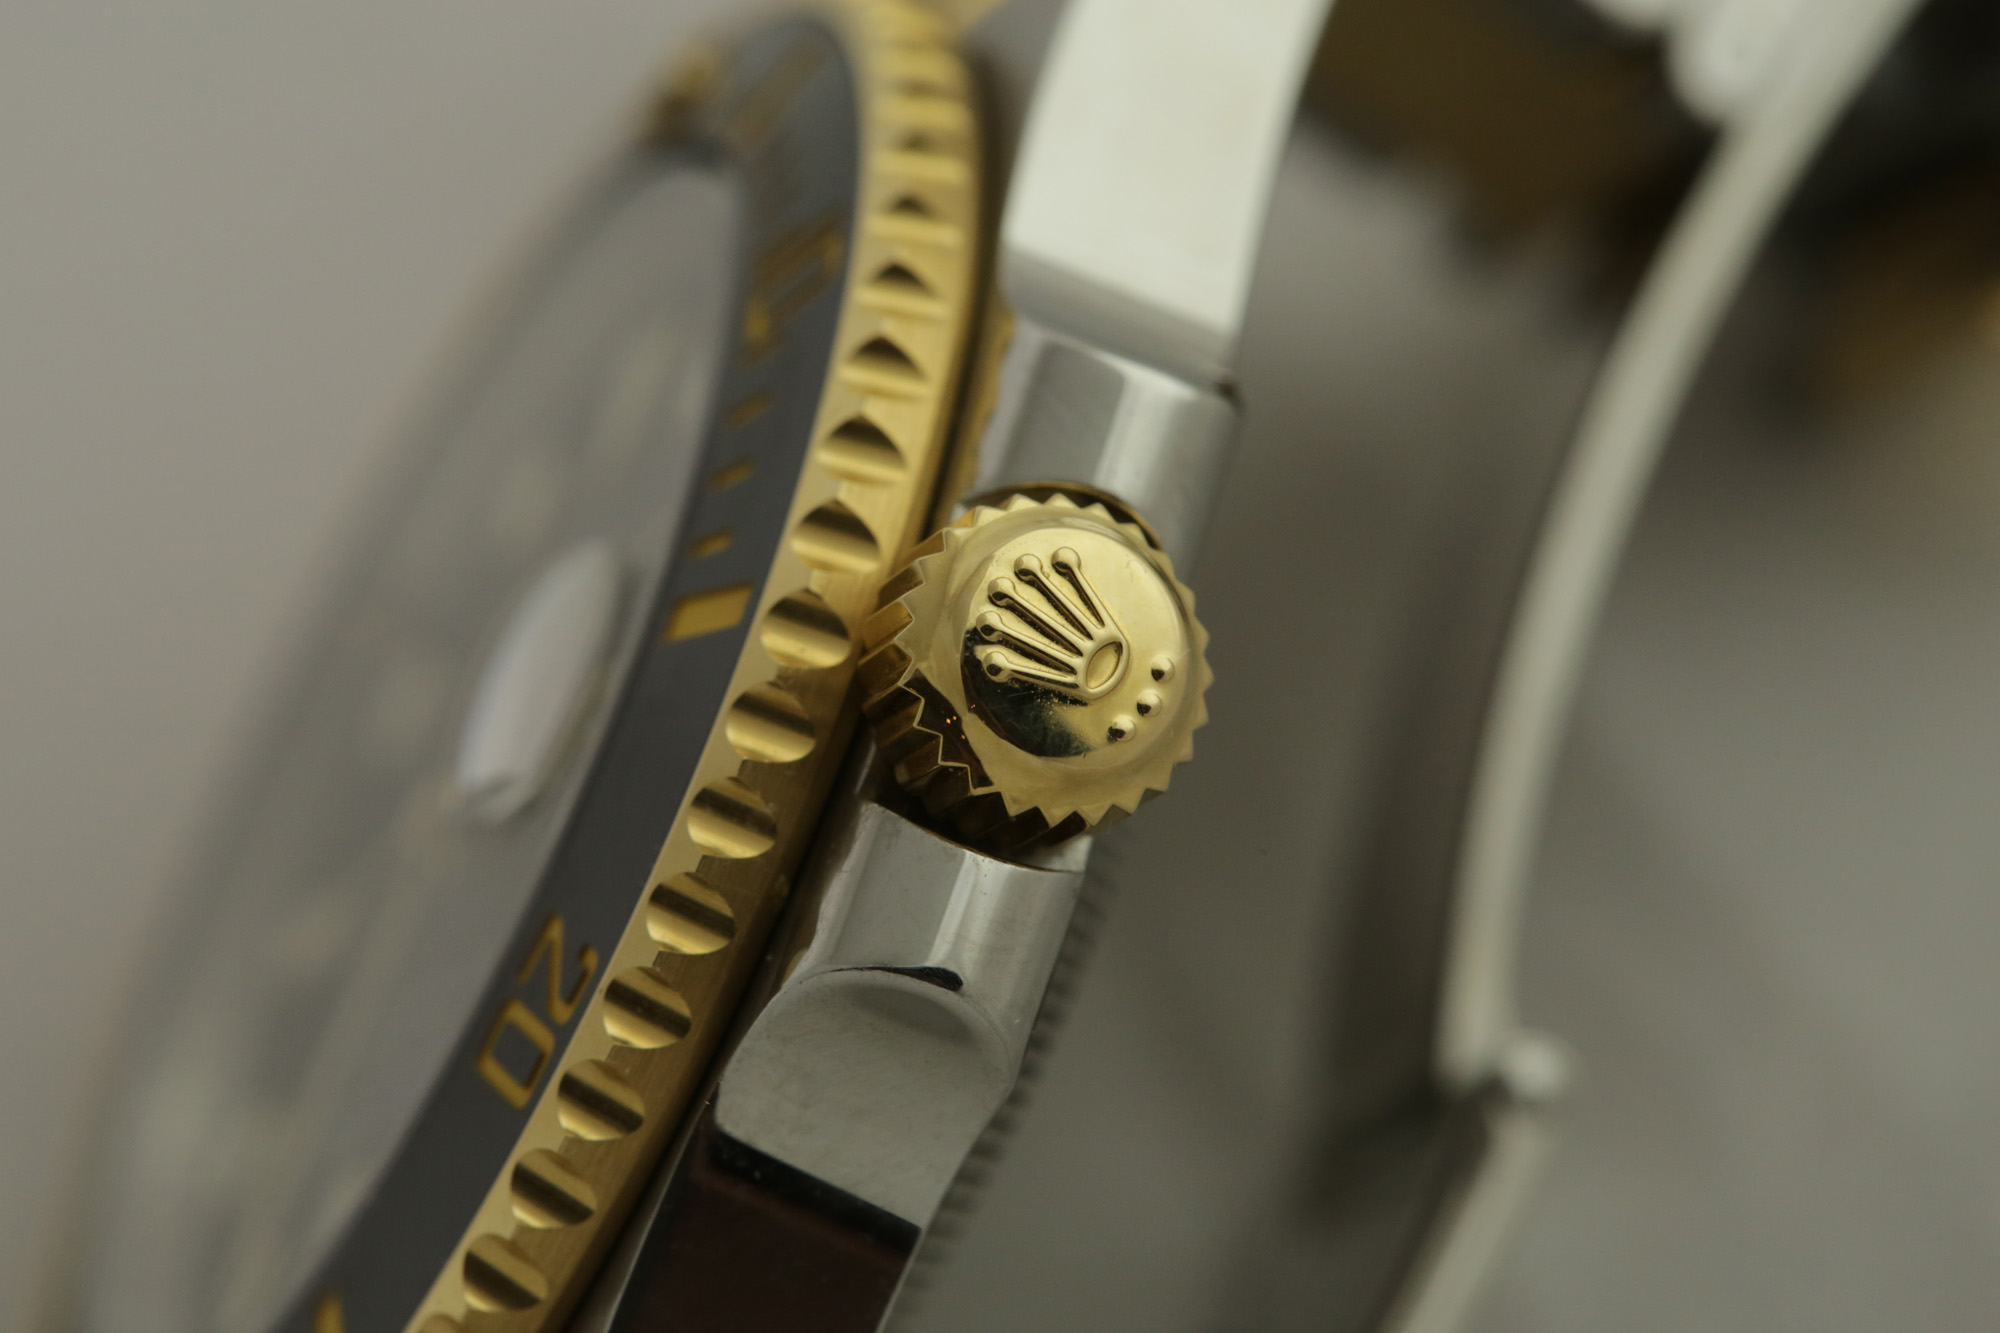 Rolex Submariner Date (Ref. 116613LN) - Rolex Crown